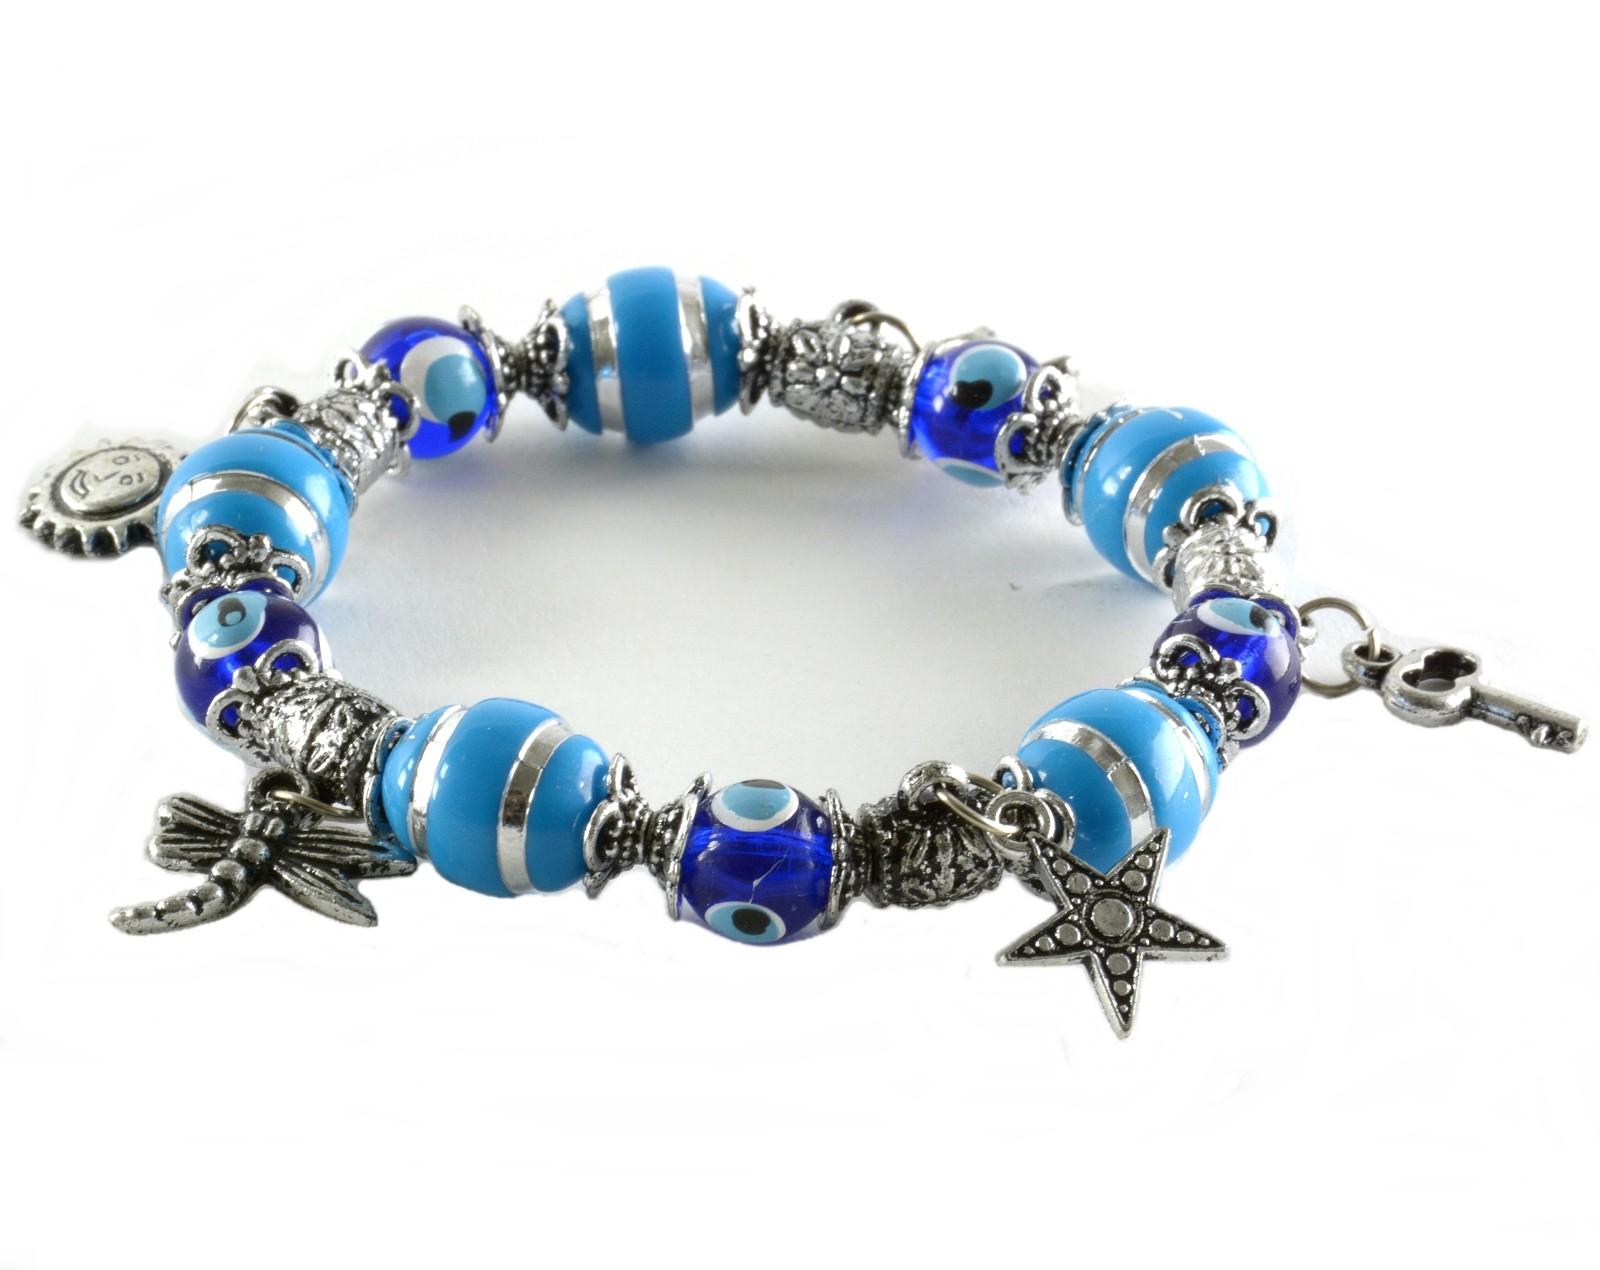 charm bracelet evil eye good luck beads nazar boncuk charms ebay. Black Bedroom Furniture Sets. Home Design Ideas